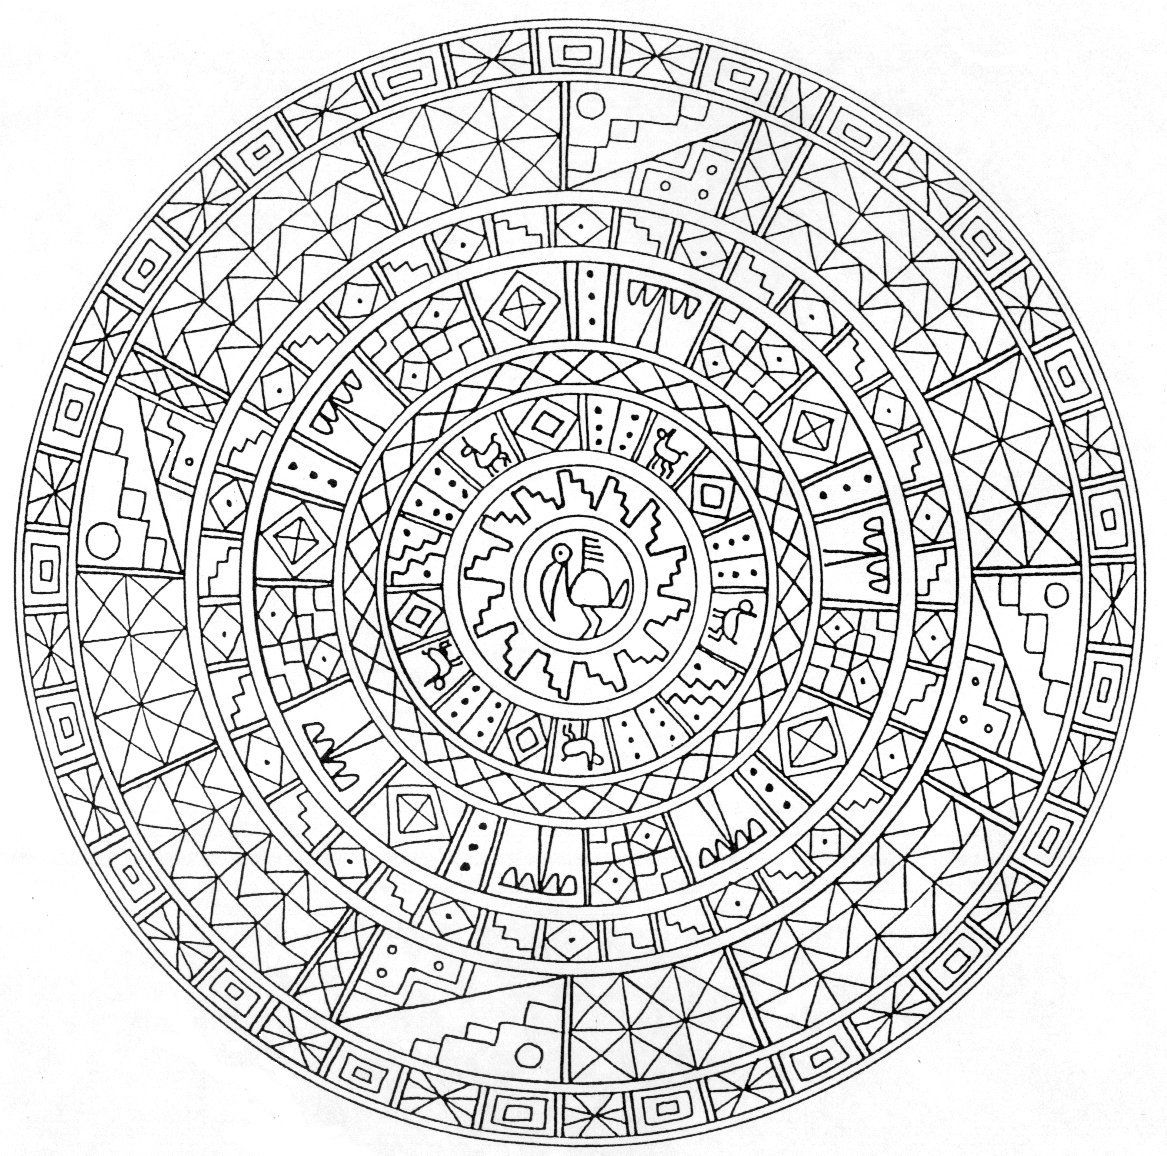 Pages to color for adults - Printable Mandala Coloring Pages Adults Tagged With Mandala Coloring Pages